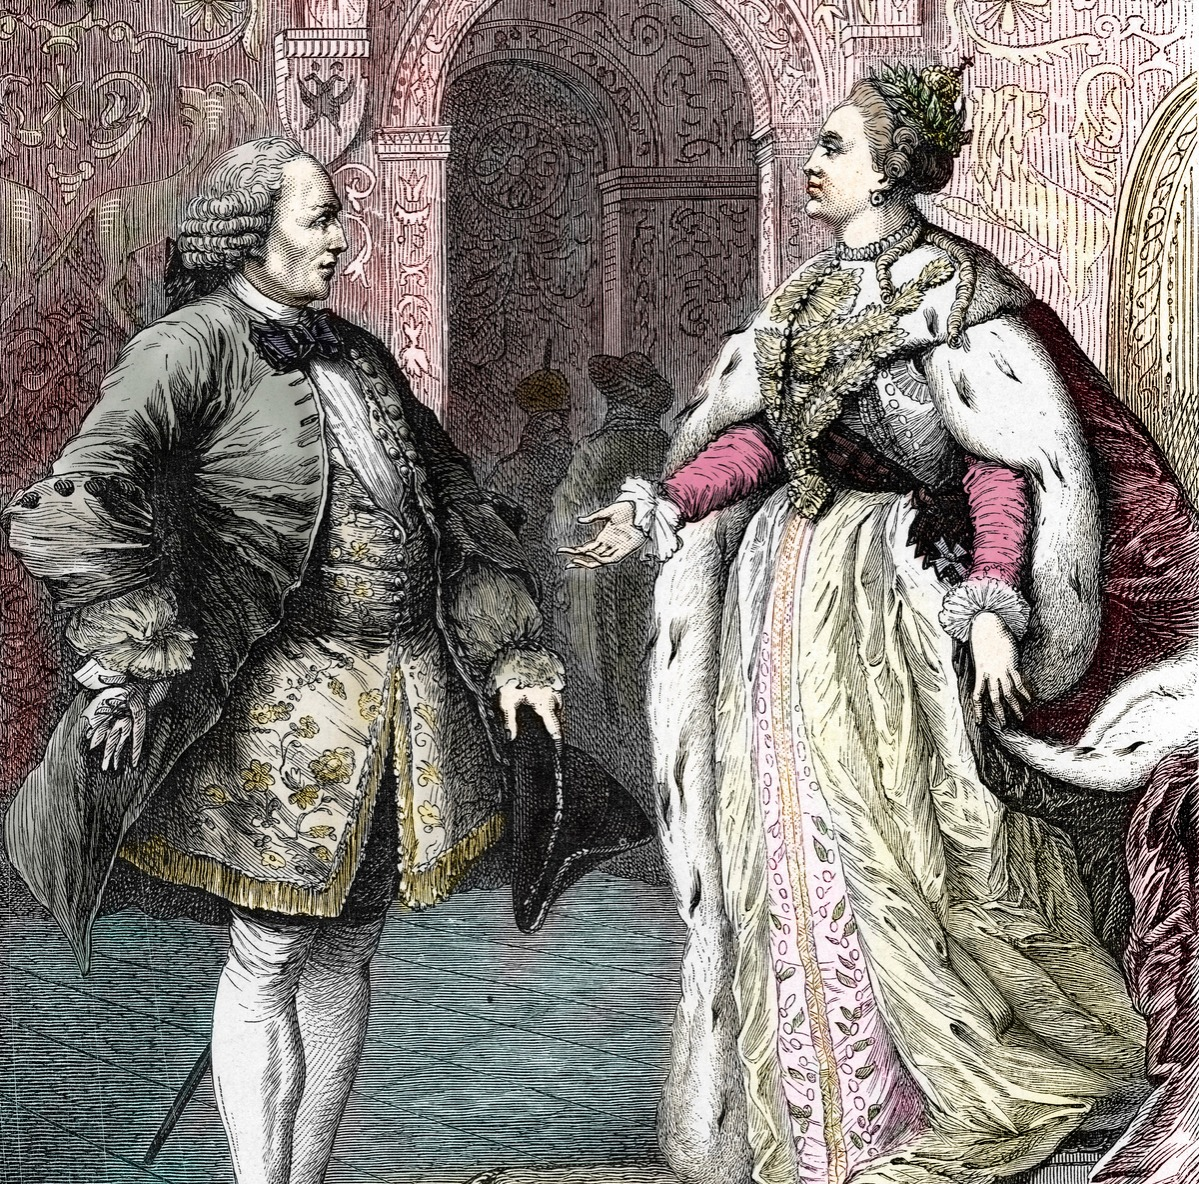 French philosopher Denis Diderot received by russian empress Catherine the Great in St Petersburg, 1773 - 1774) Engraving 19th century Private collection